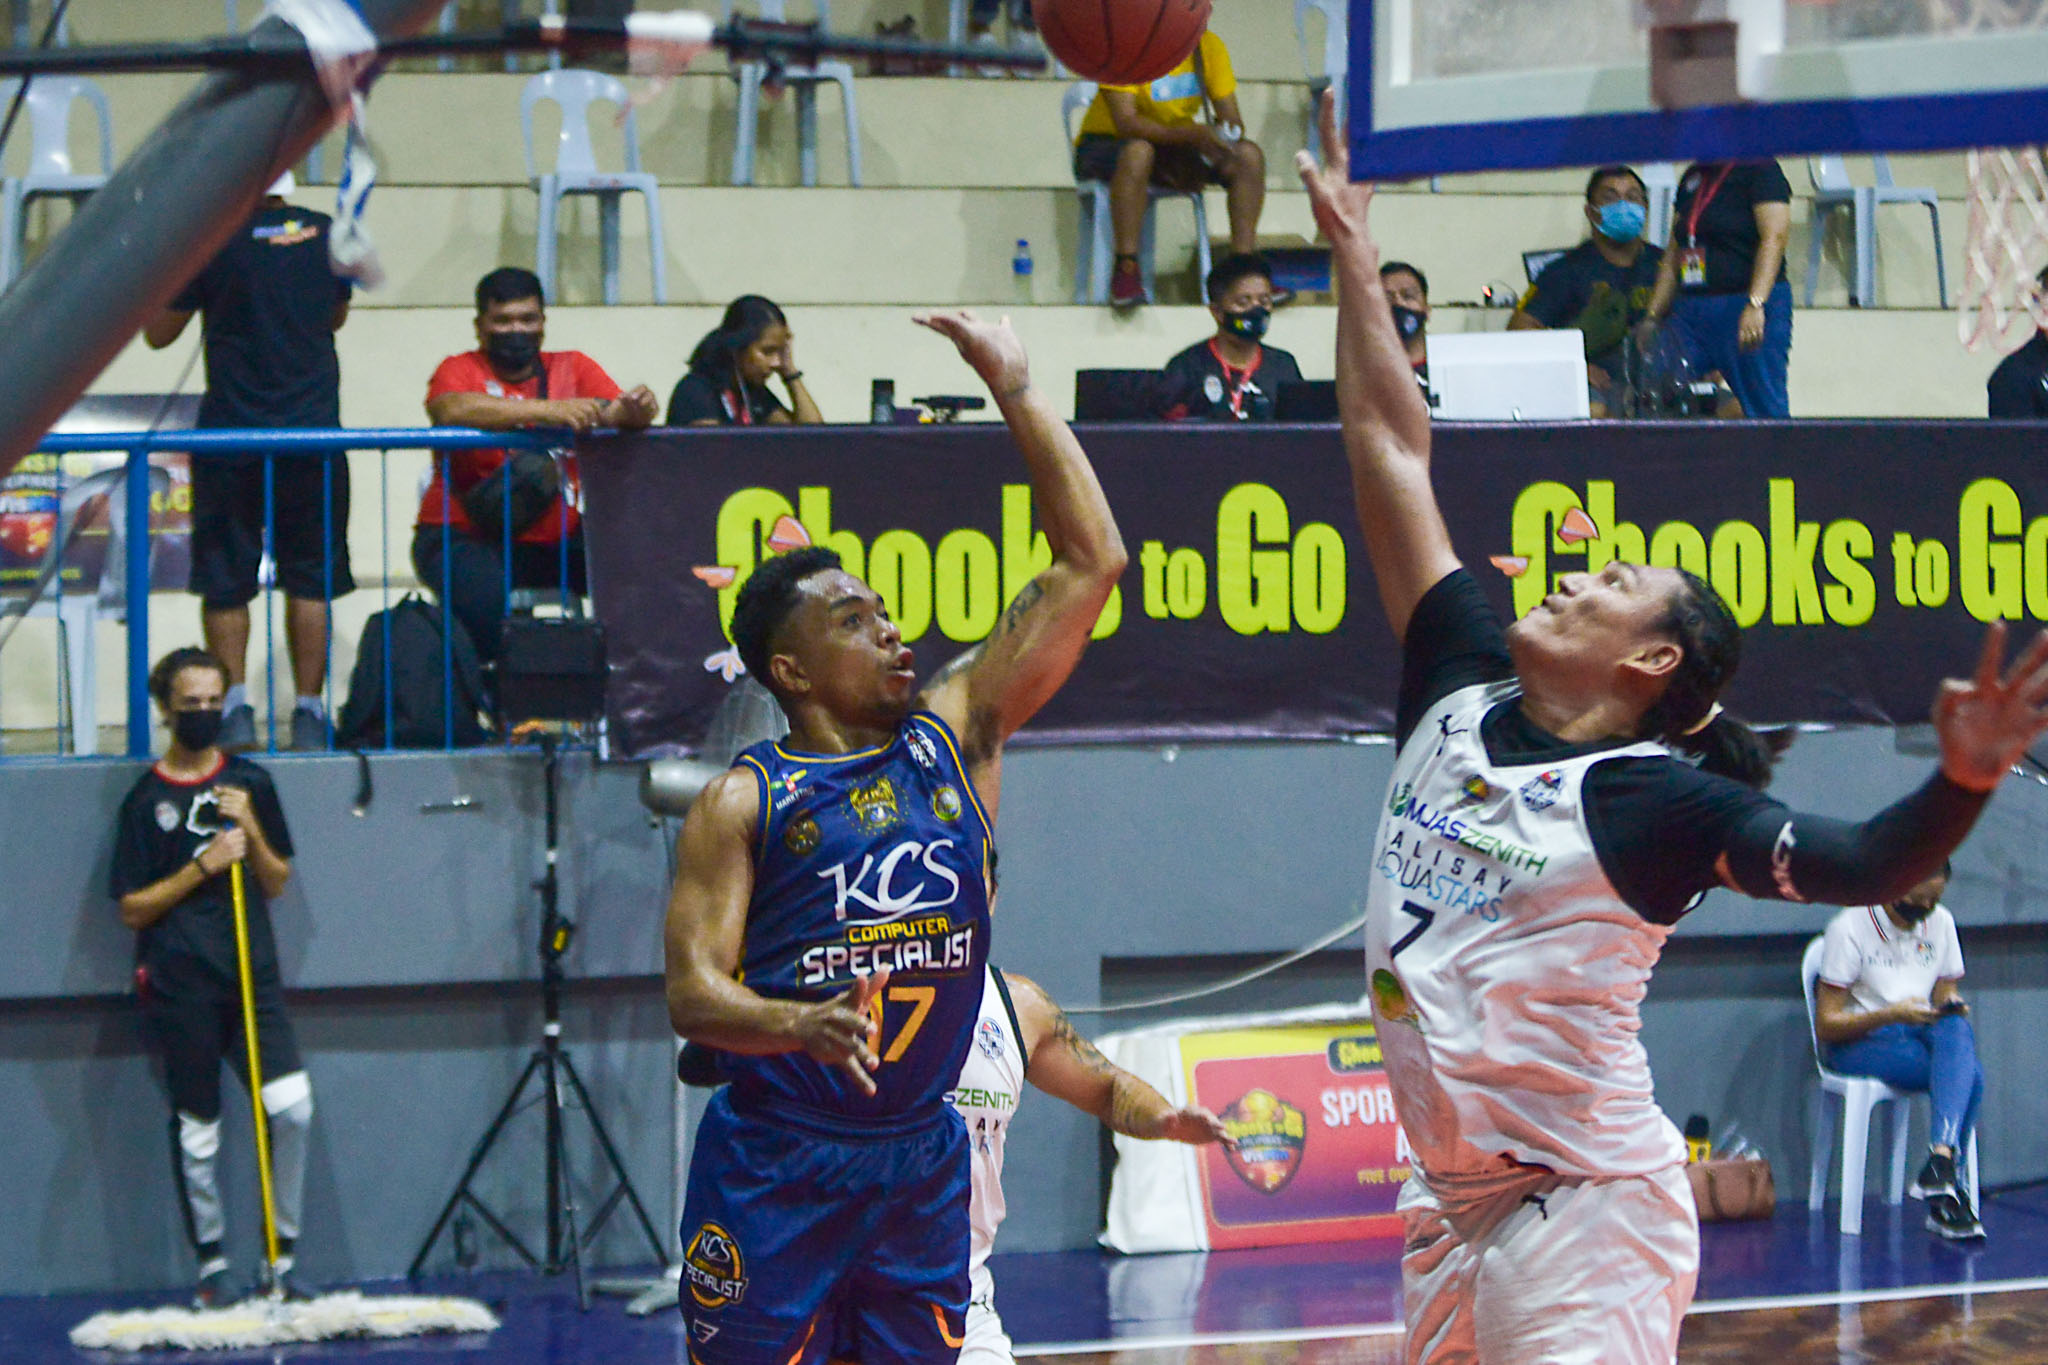 2021-Chooks-to-Go-VisMinCup-Visayas-Finals-Game-3-Talisay-vs-Mandaue-Ping-Exciminiano Exciminiano's redemption campaign complete with VisMin-Visayas Finals MVP plum Basketball News VisMin Super Cup  - philippine sports news